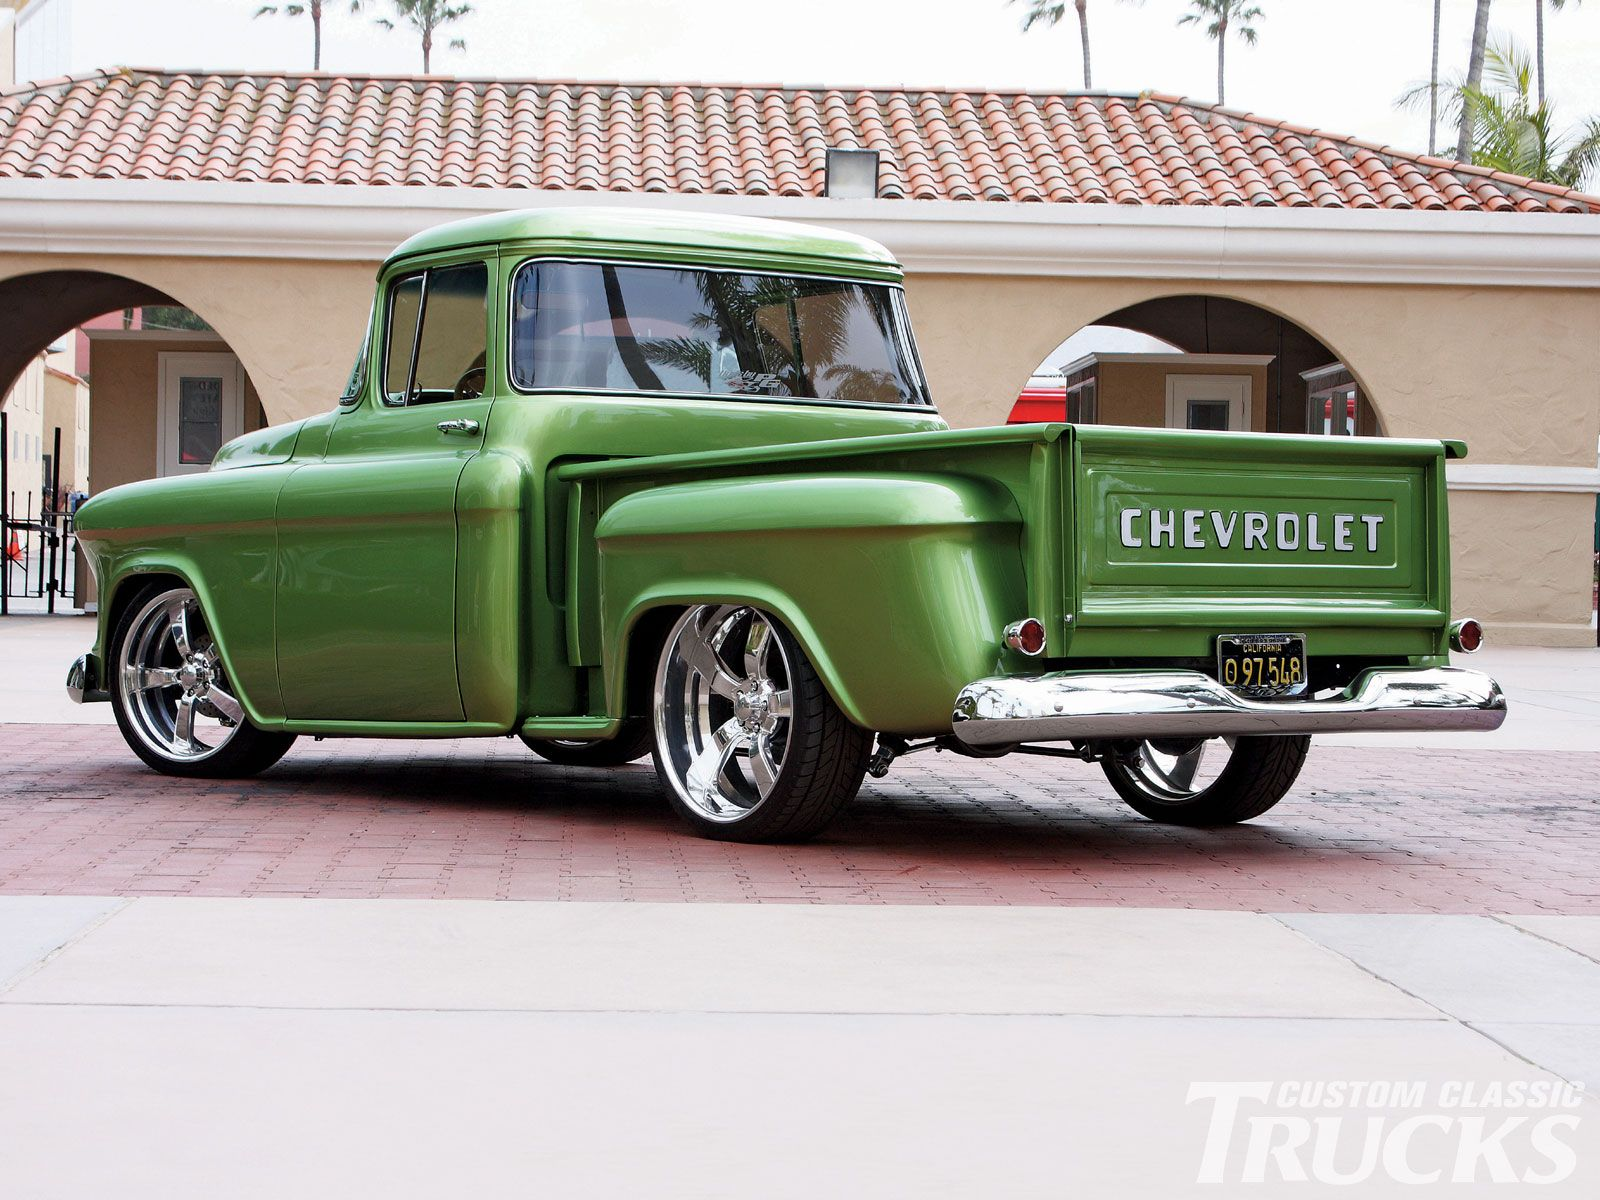 1956 chevrolet bel air custom flat red paint youtube - 1956 Chevy Stepside Pickup Truck Exceptional Green Paint Job Sweet